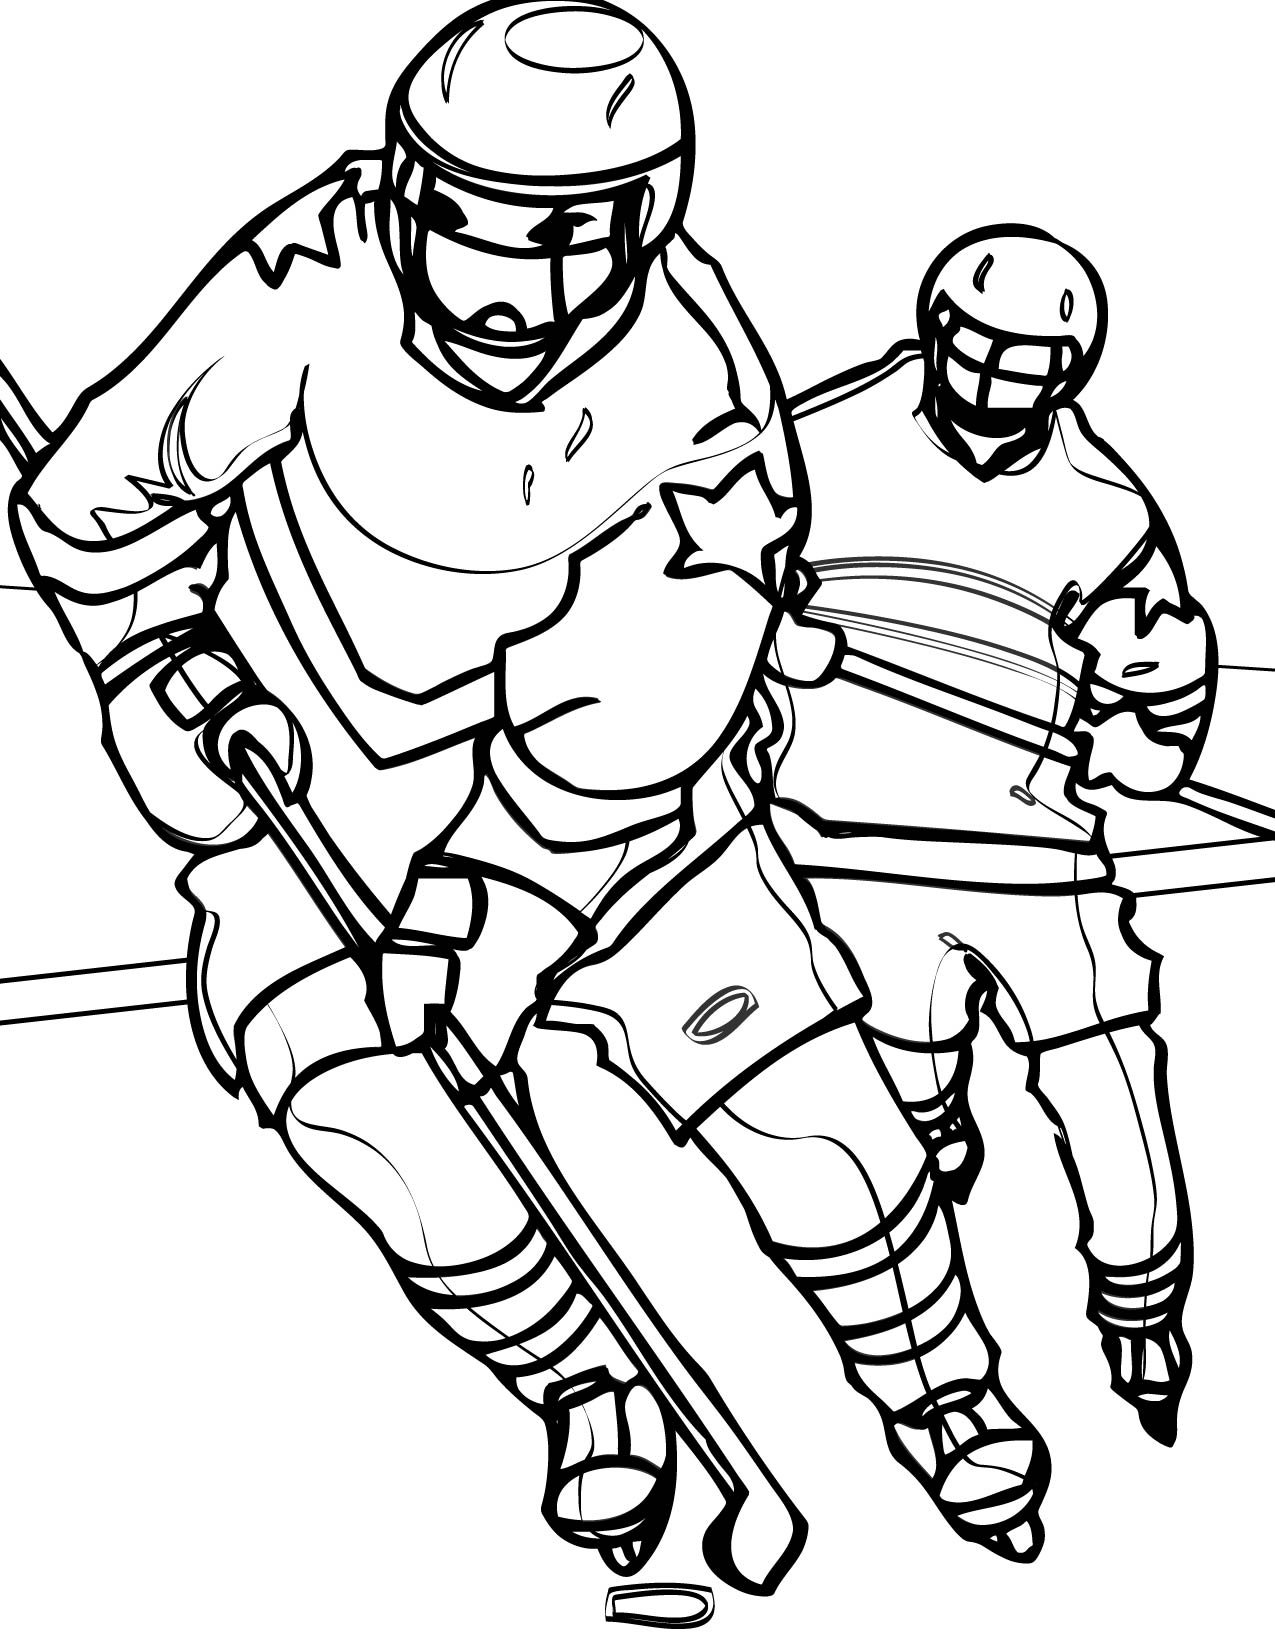 Printable Sports Coloring Pages Coloring Me Coloring Pages To Print Free